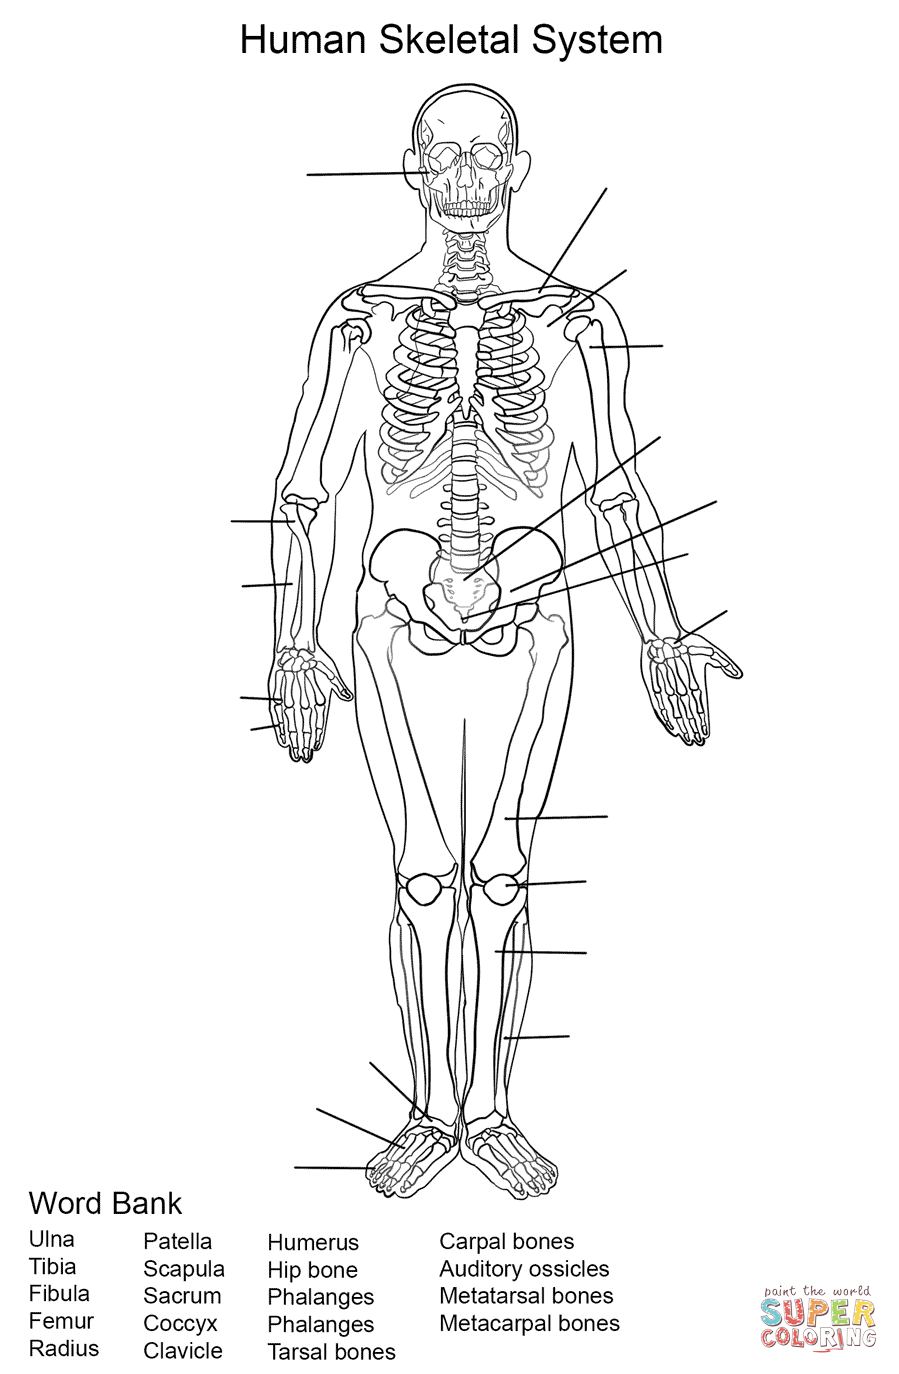 Human Skeletal System Worksheet Coloring Page | Free Printable | Human Skeleton Printable Worksheet